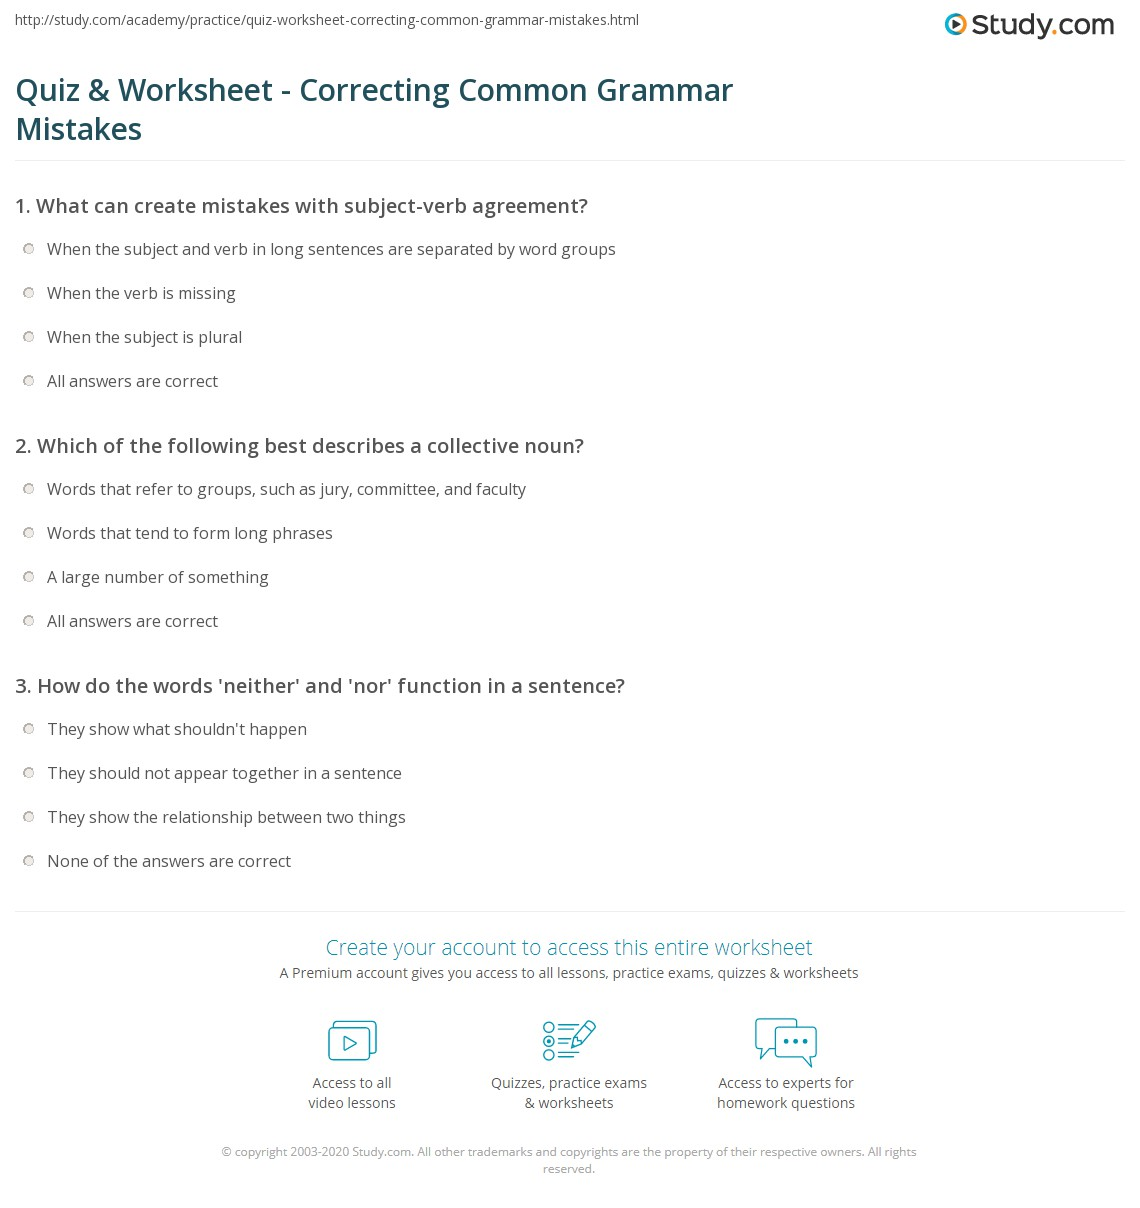 Worksheet Grammar Correction Worksheets Grass Fedjp